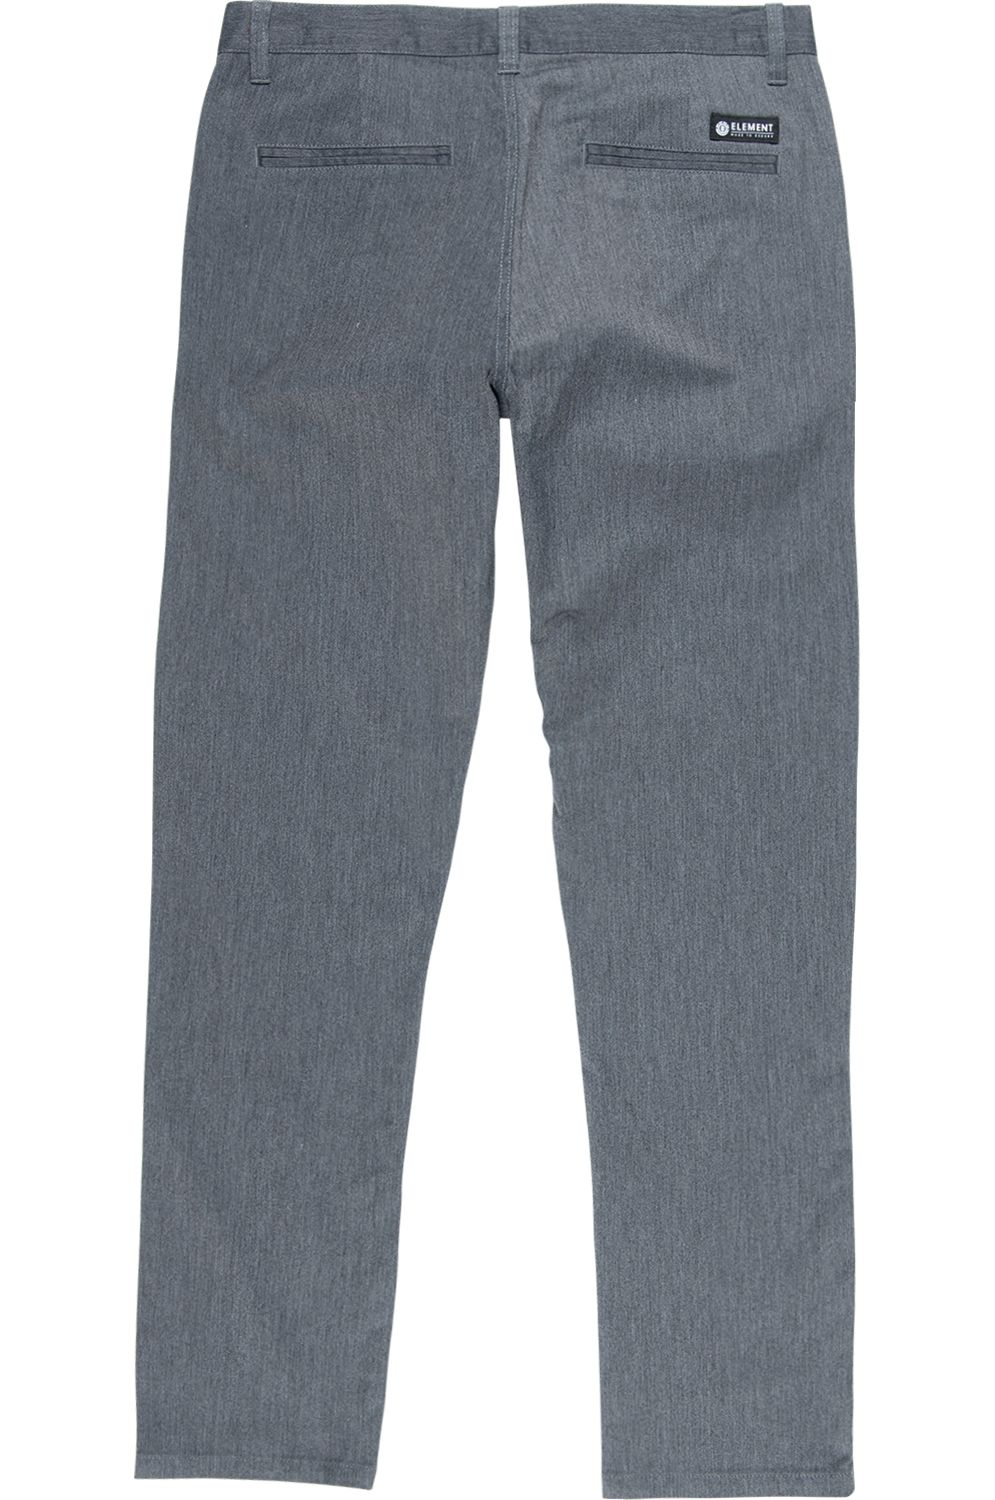 Element Pants HOWLAND CLASSIC CHINO Charcoal Heather